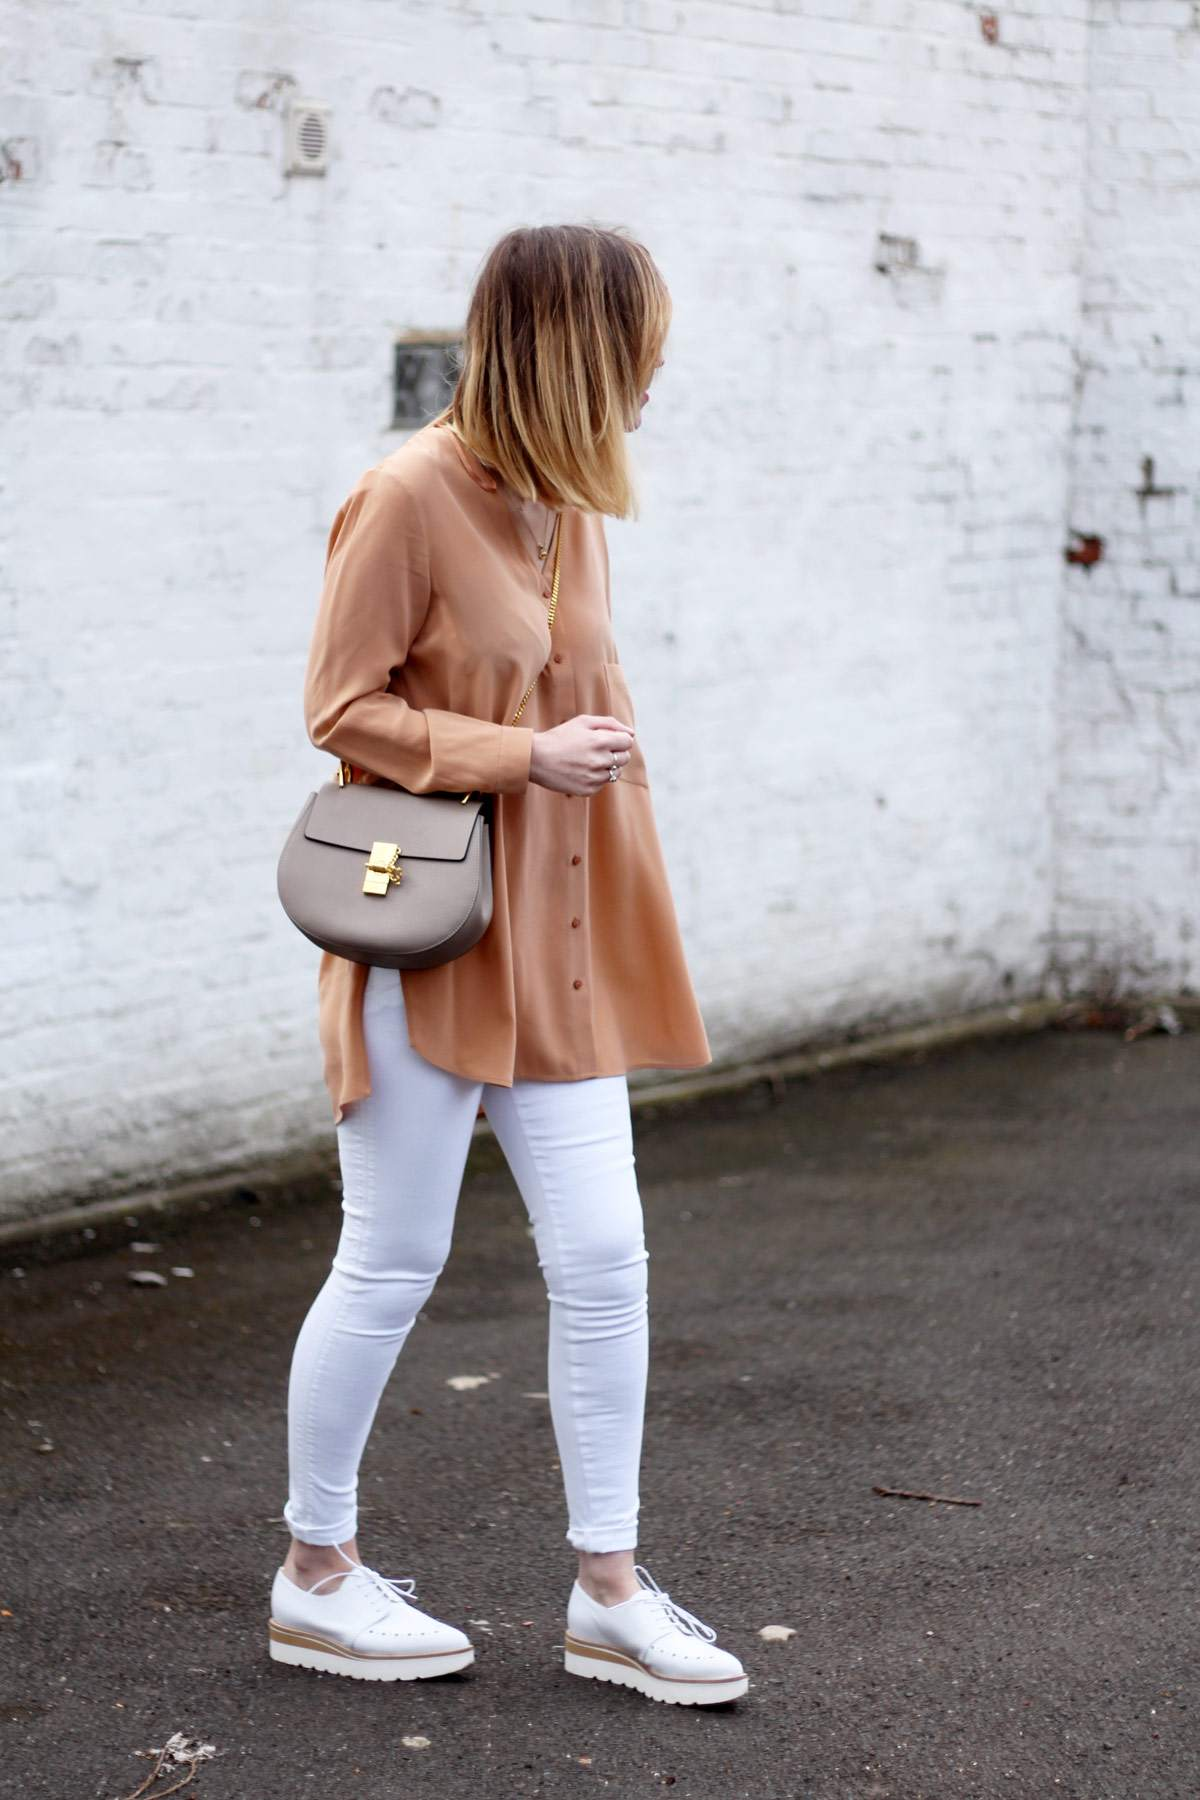 M&S-belted-coat-alberto-zago-brogue-shoes-chloe-drew-grey-hudson-white-jeans-10